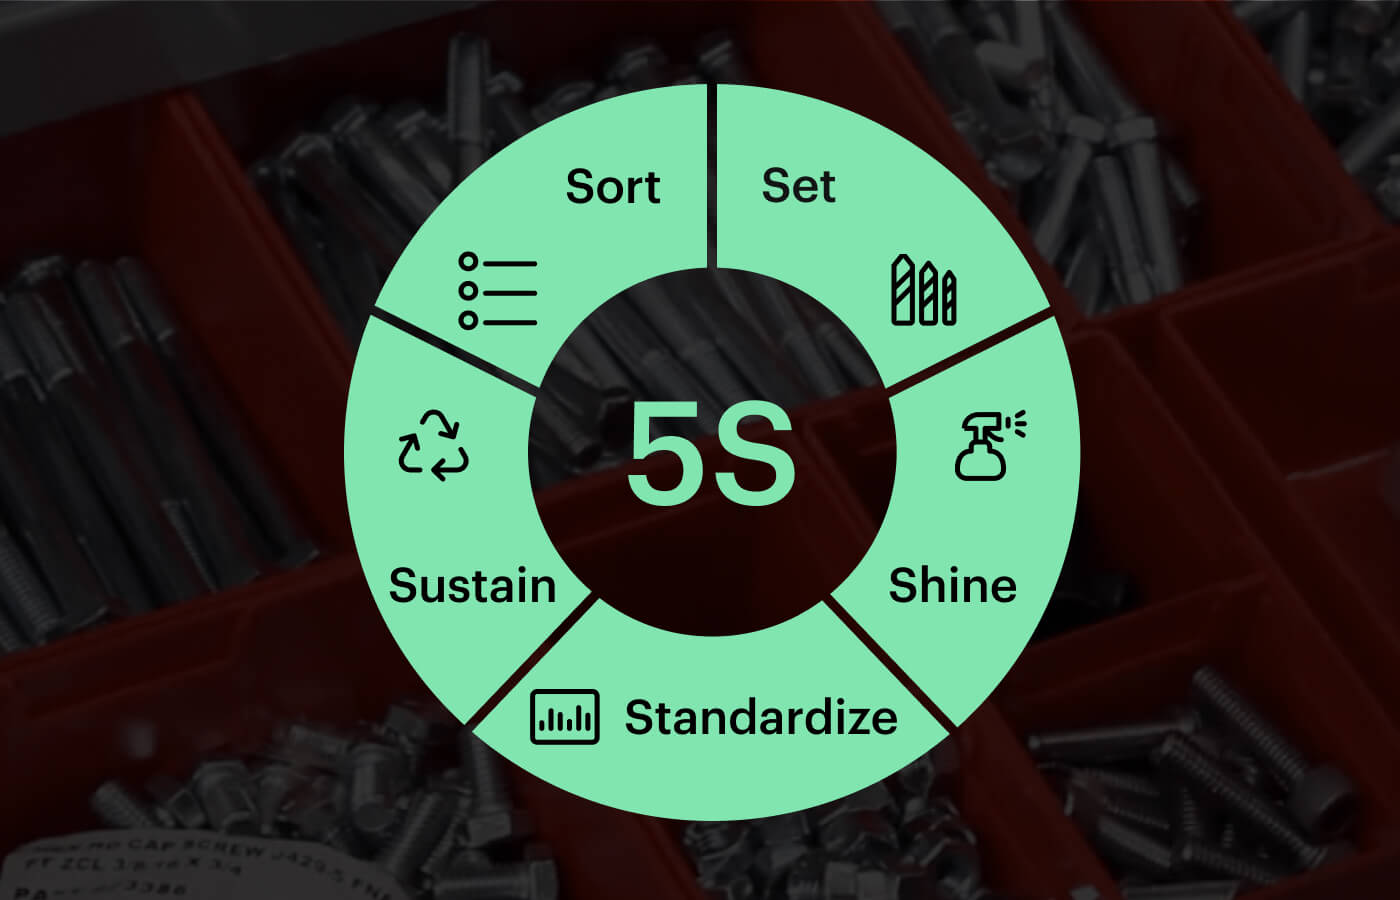 5s wheel visual